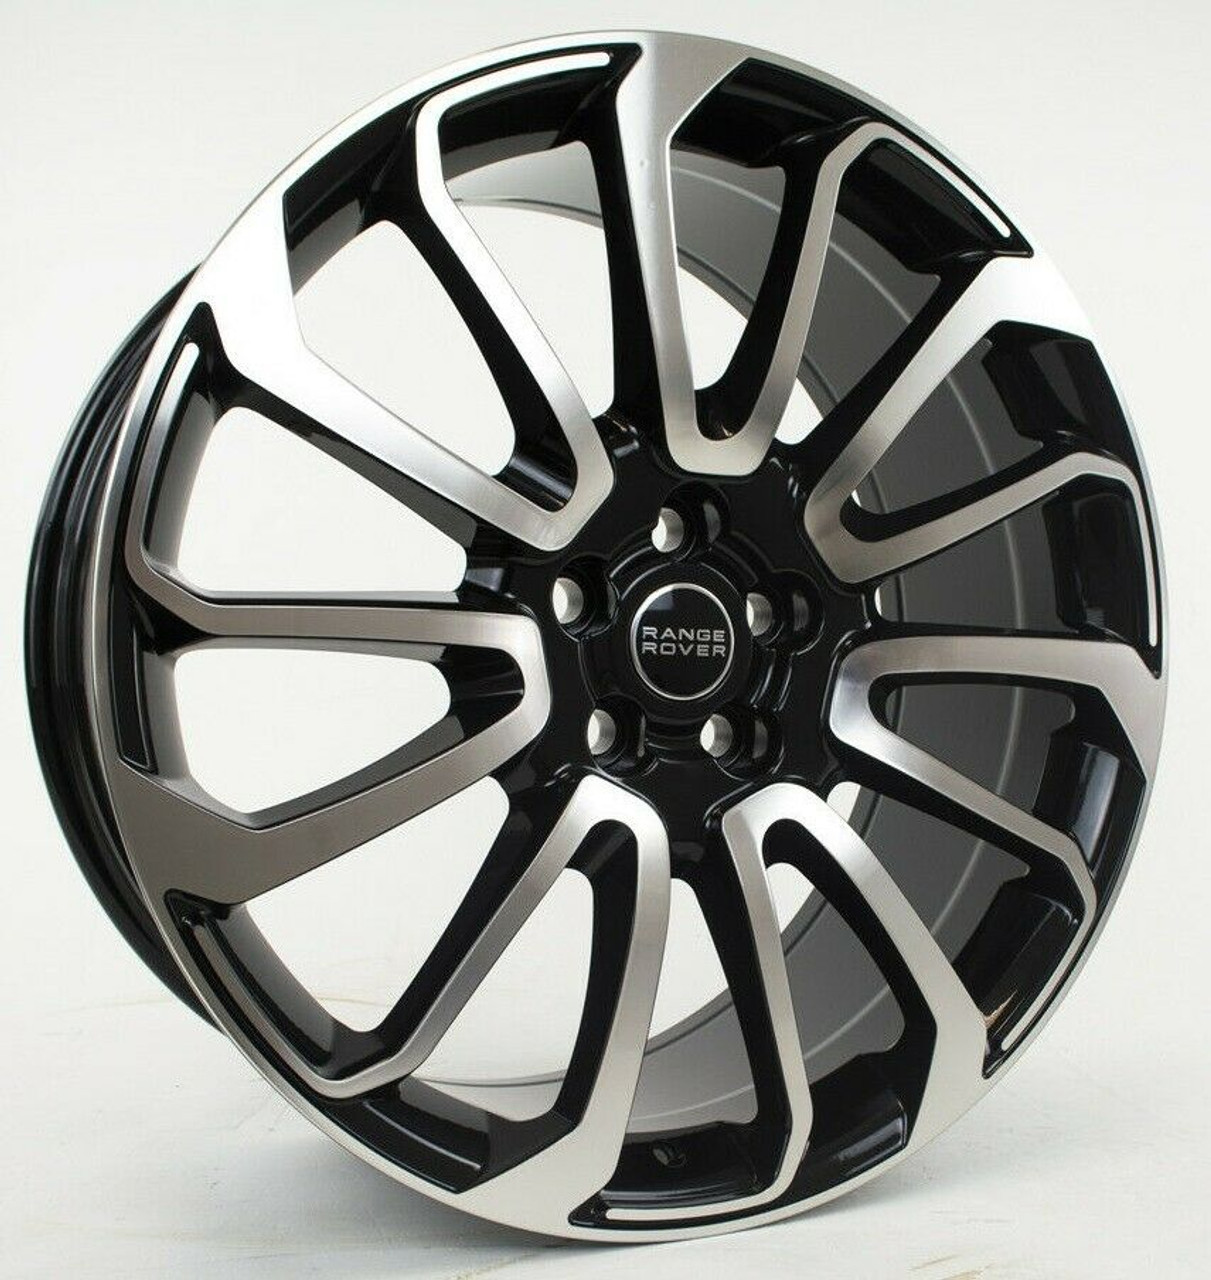 Range Rover Wheels >> 22 Fits Range Rover Autobiography Wheels Hse Sport Land Rover Machined Black Rims Set Of 4 22x9 5